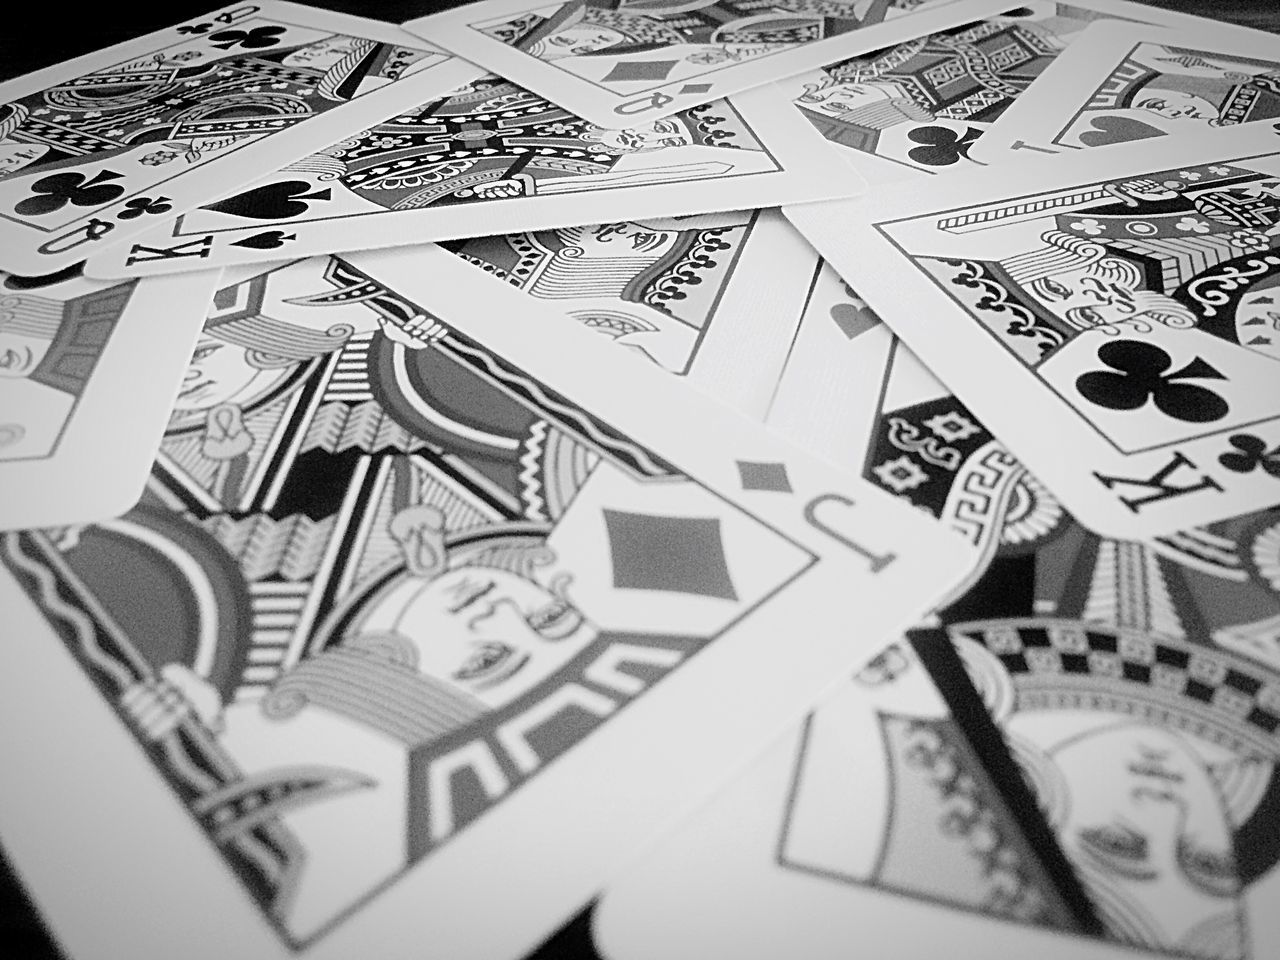 backgrounds, indoors, no people, large group of objects, finance, close-up, full frame, still life, selective focus, currency, wealth, paper, paper currency, choice, variation, leisure games, arts culture and entertainment, communication, business, high angle view